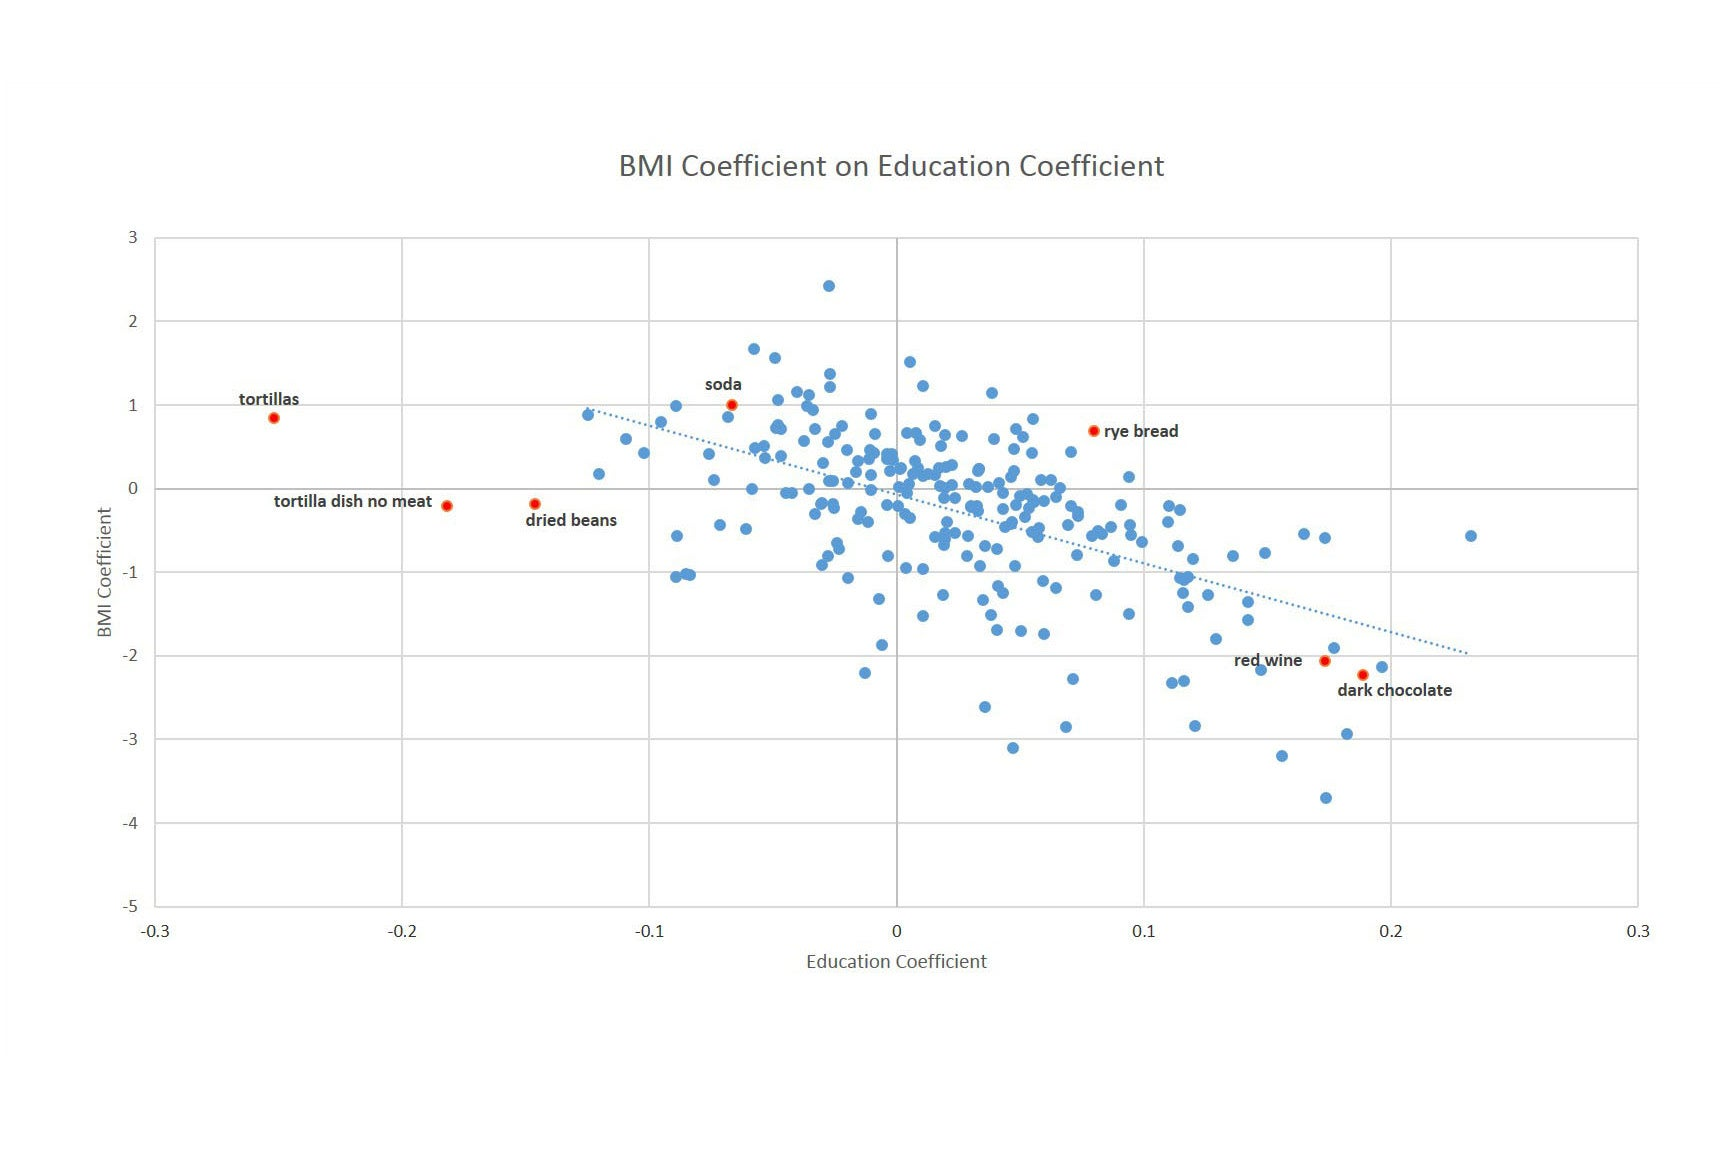 Scatter plot of the BMI coefficient on education coefficient.